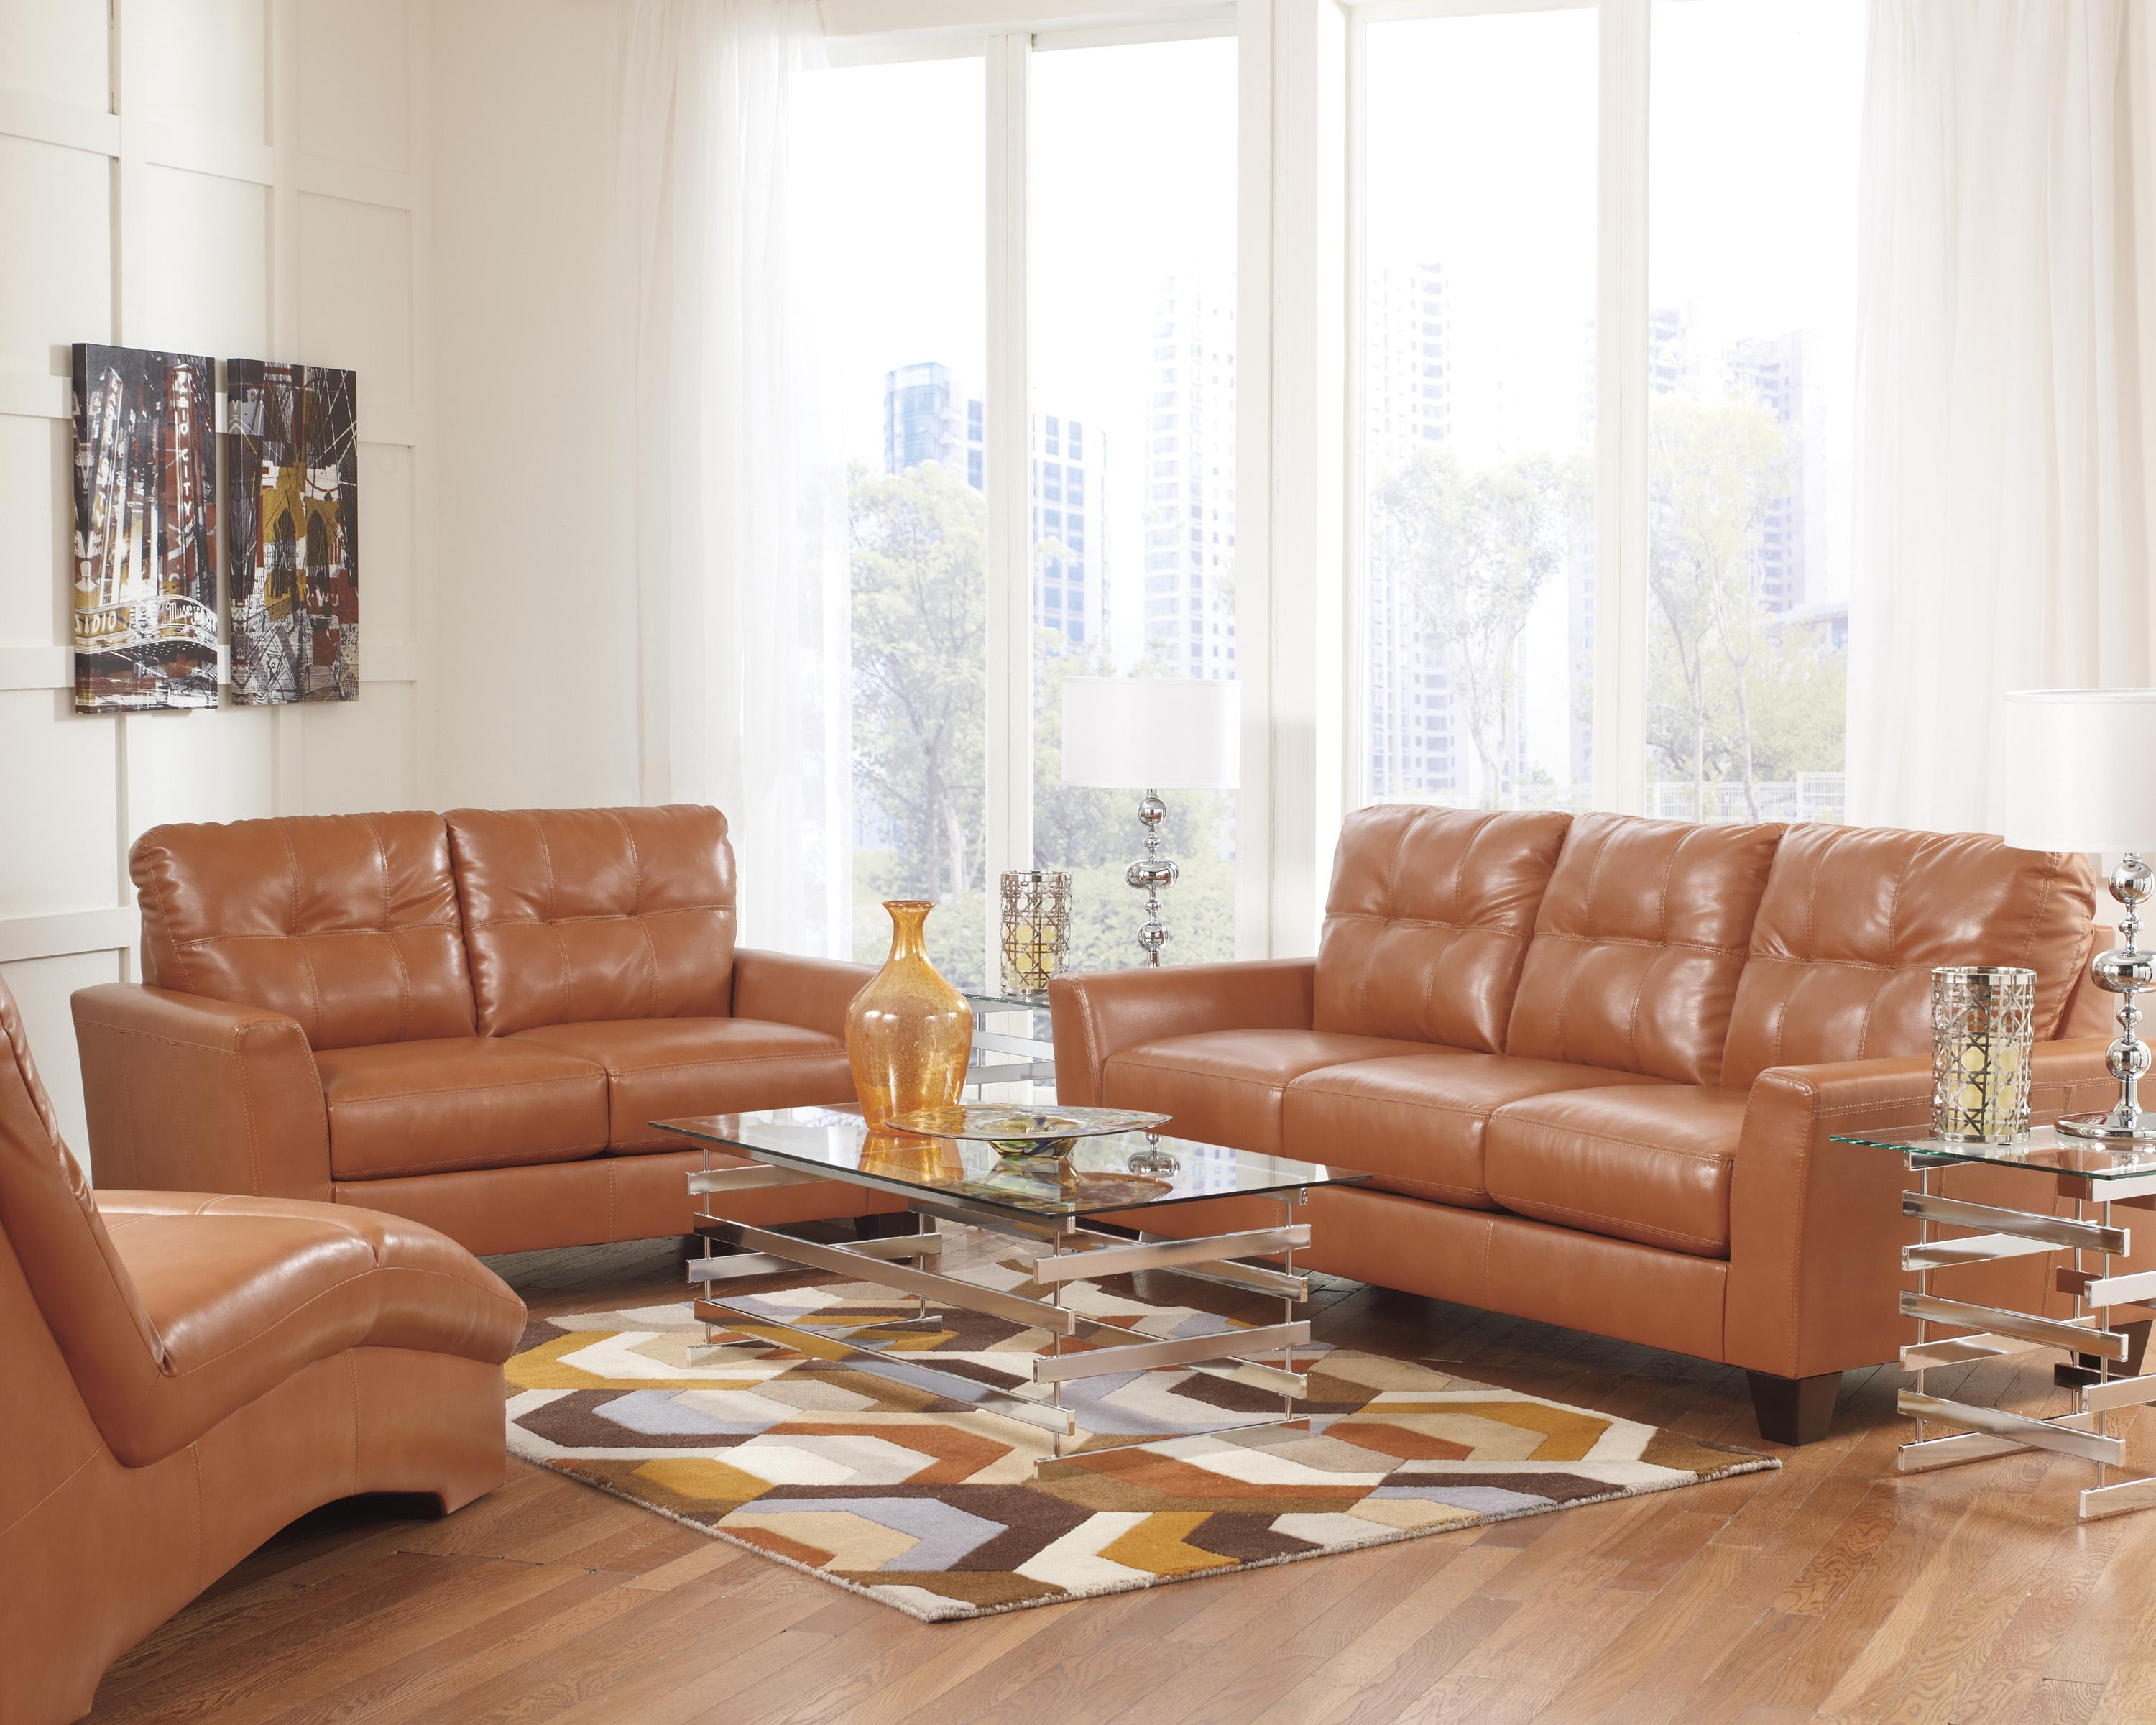 Burnt Orange Leather Sofa Trieste Living Room Collection (View 12 of 20)